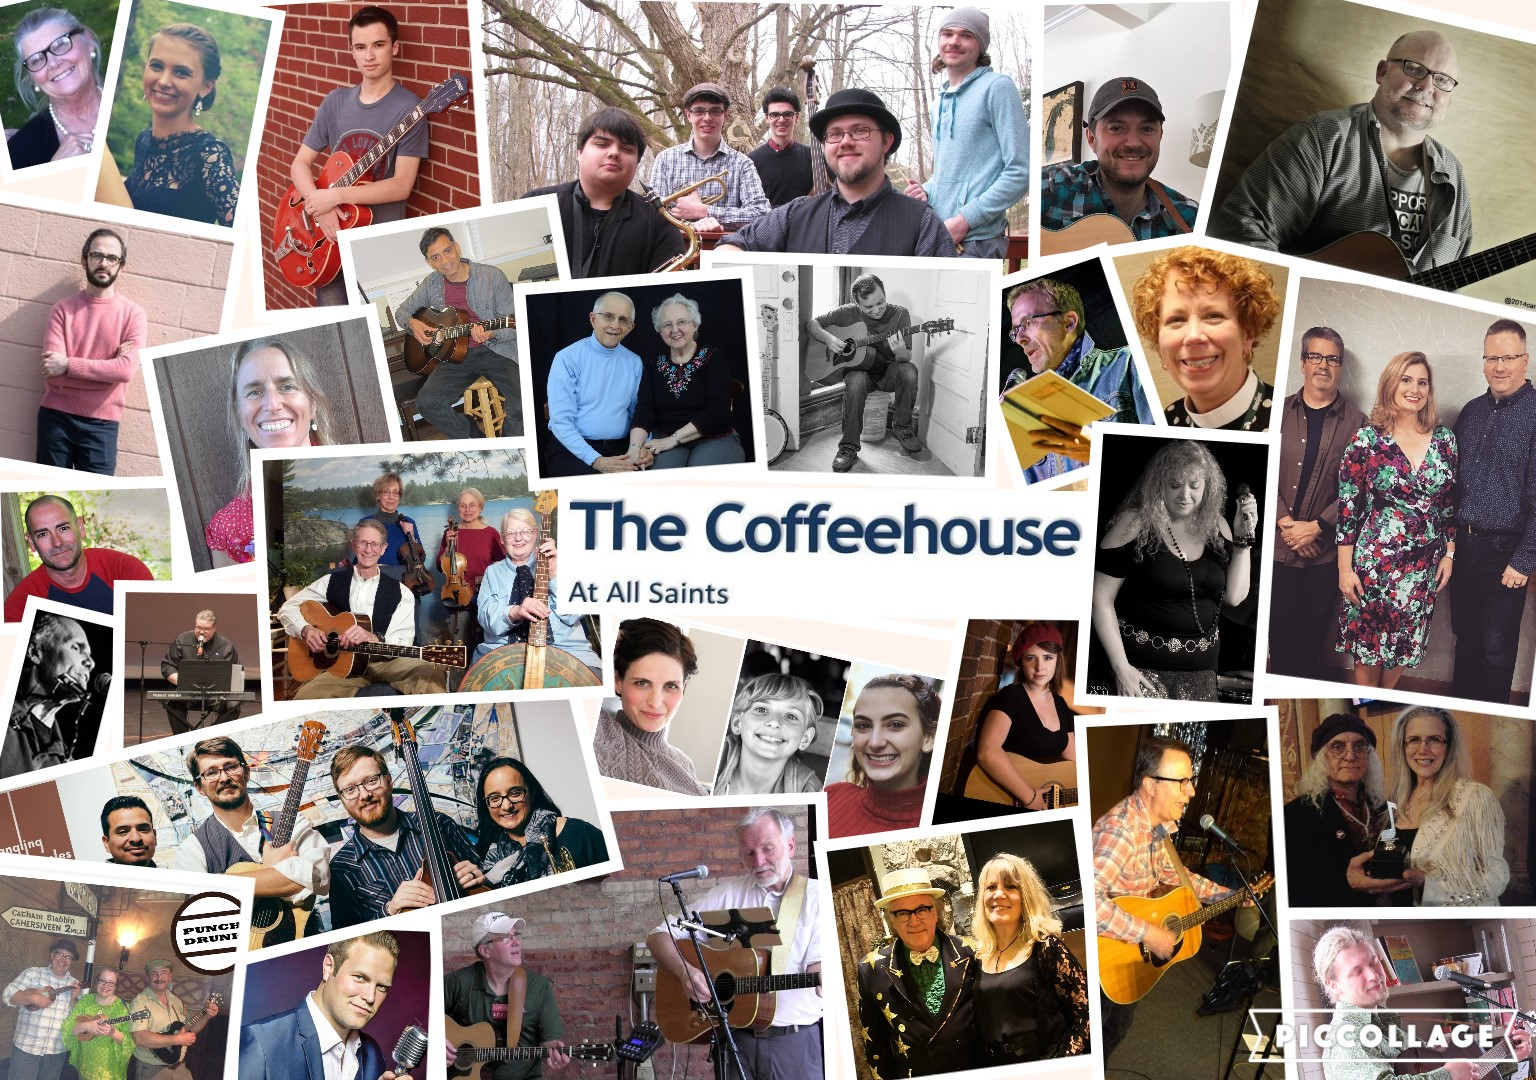 The Coffeehouse at All Saints